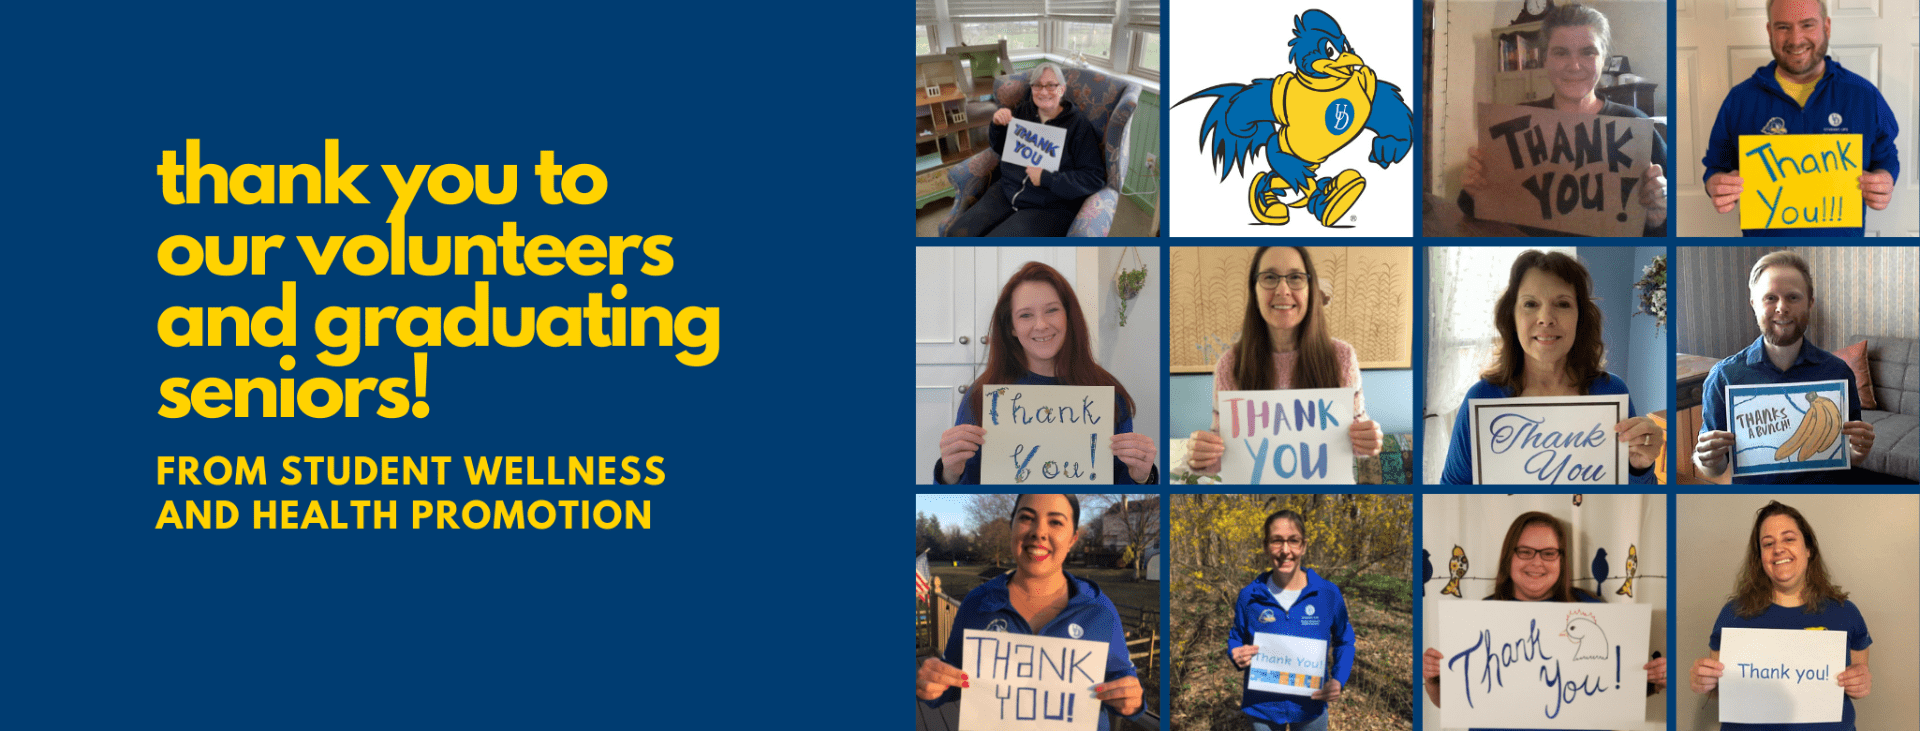 """a banner featuring images of the SWHP staff holding up """"thank you"""" signs with the text, """"thank you to our volunteers and graduating seniors"""""""